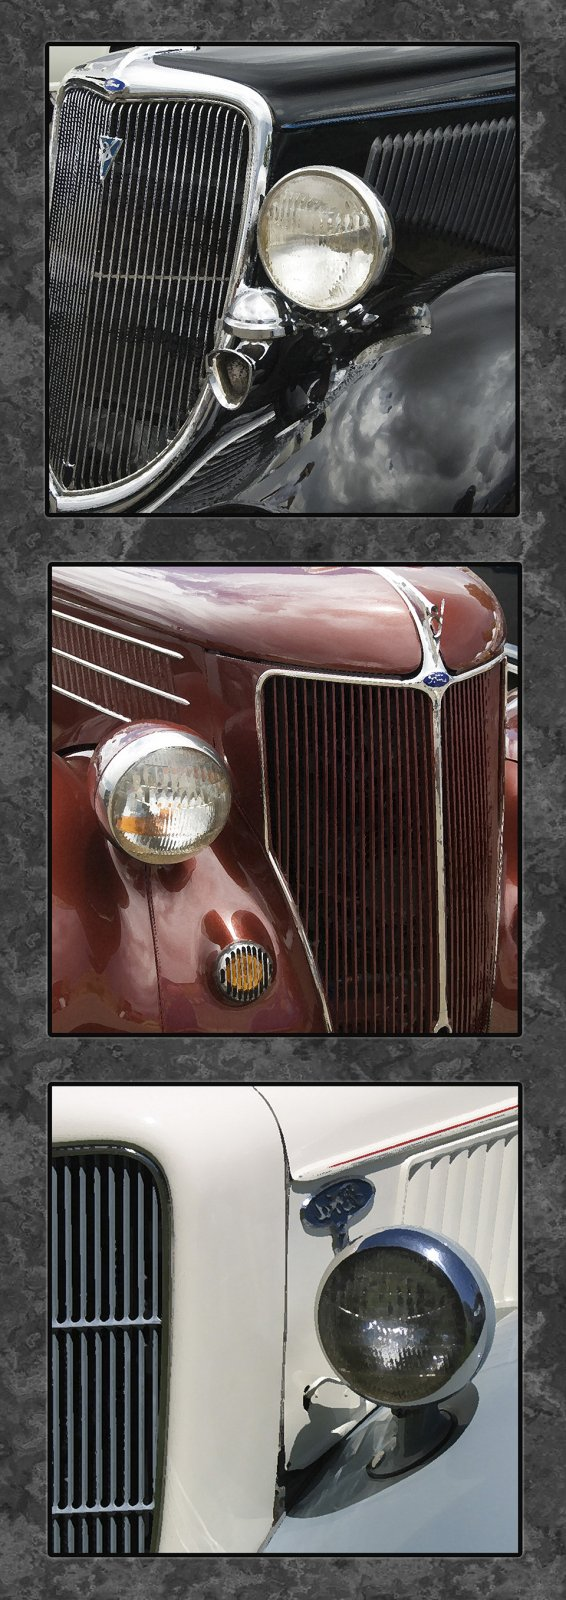 Classic Car Grills Panel by Nancy Fuller